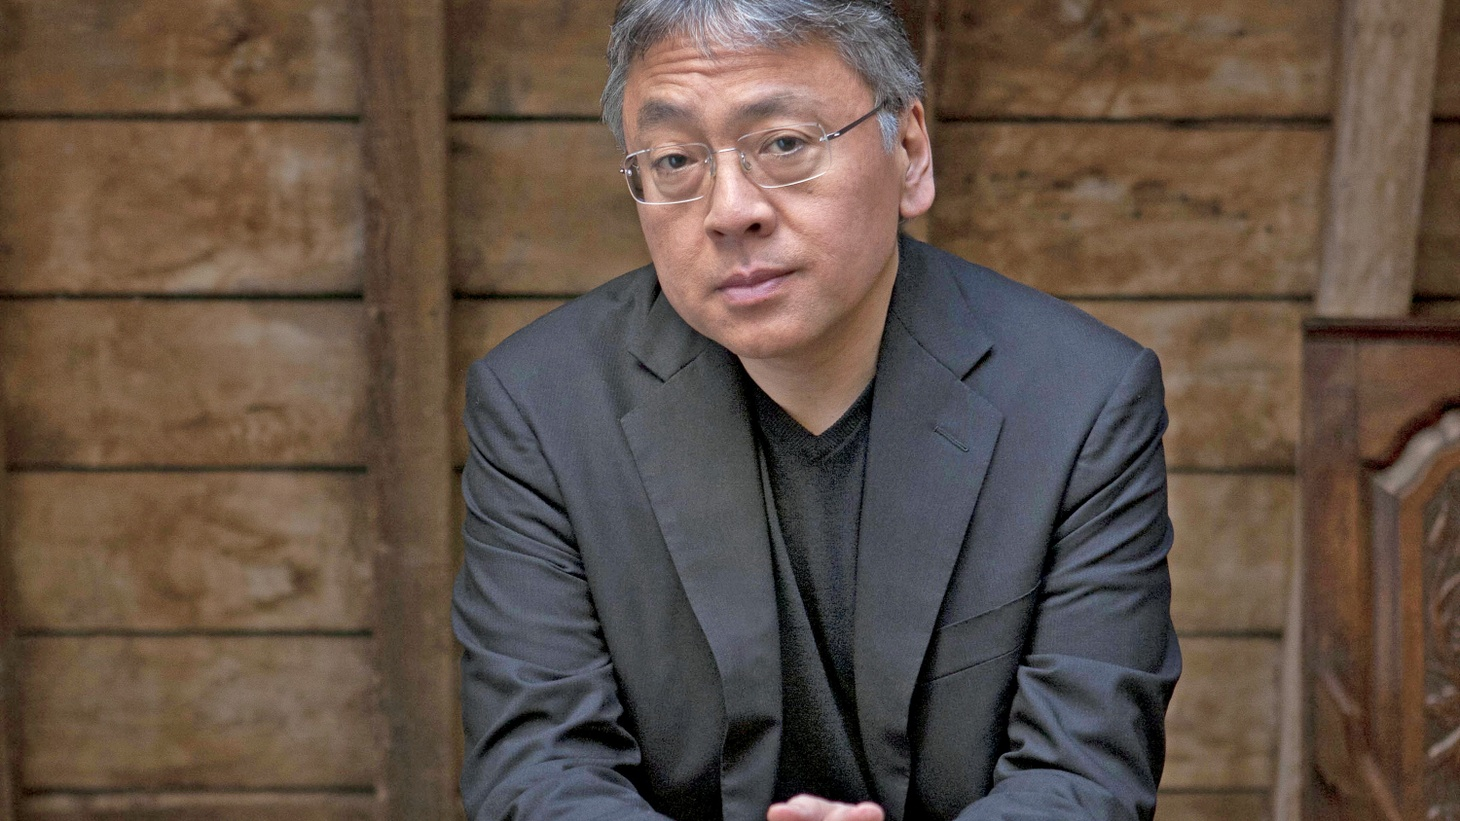 Kazuo Ishiguro starts the interview about his new book as a look at the concept of societal memory.